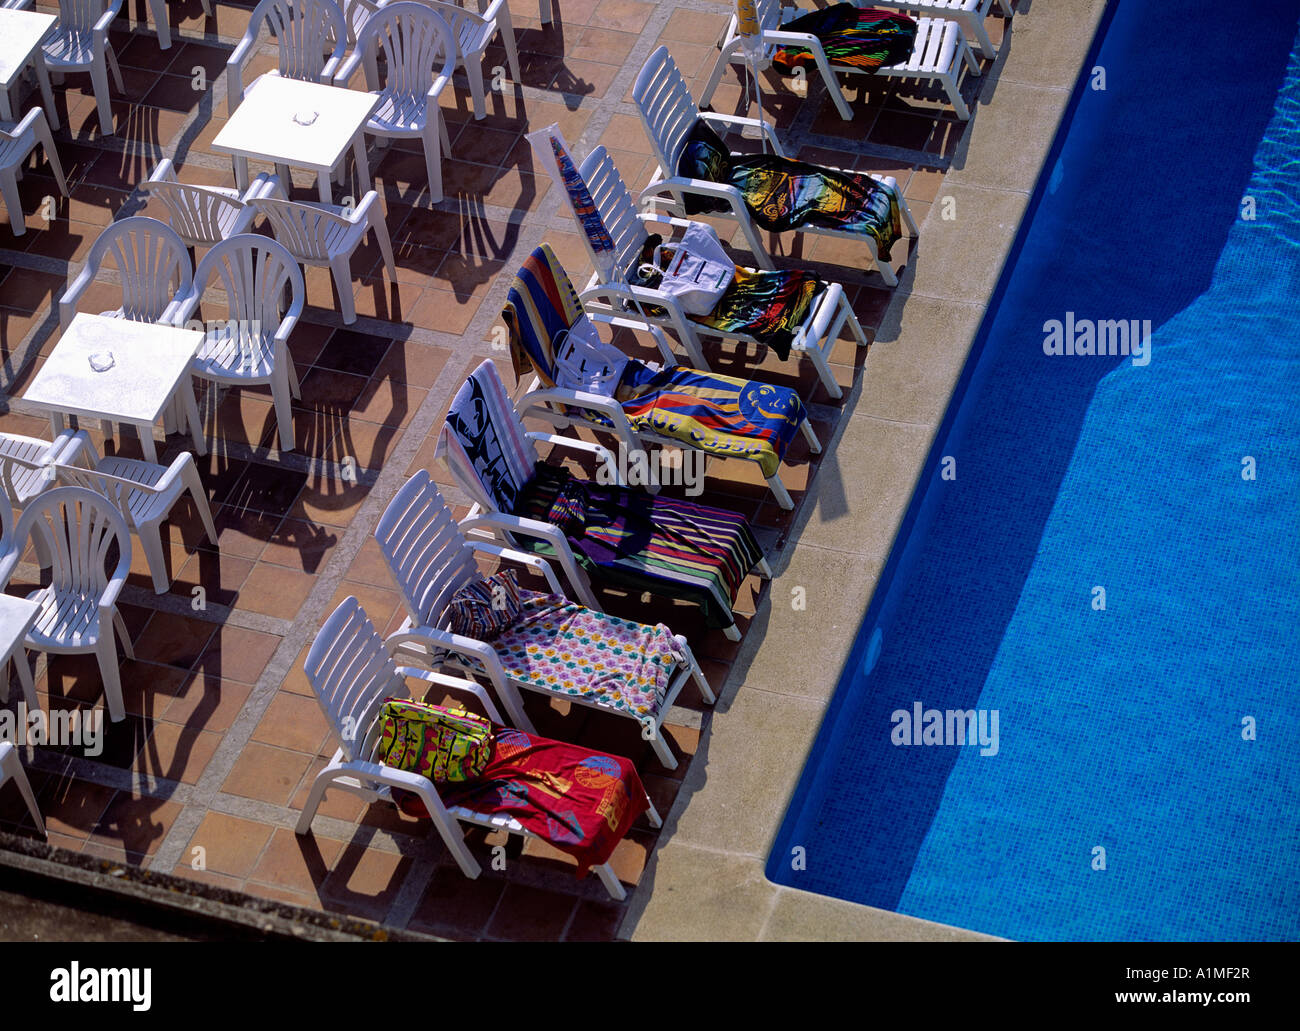 loungers at hotel swimmingpool reserved in advance - Stock Image